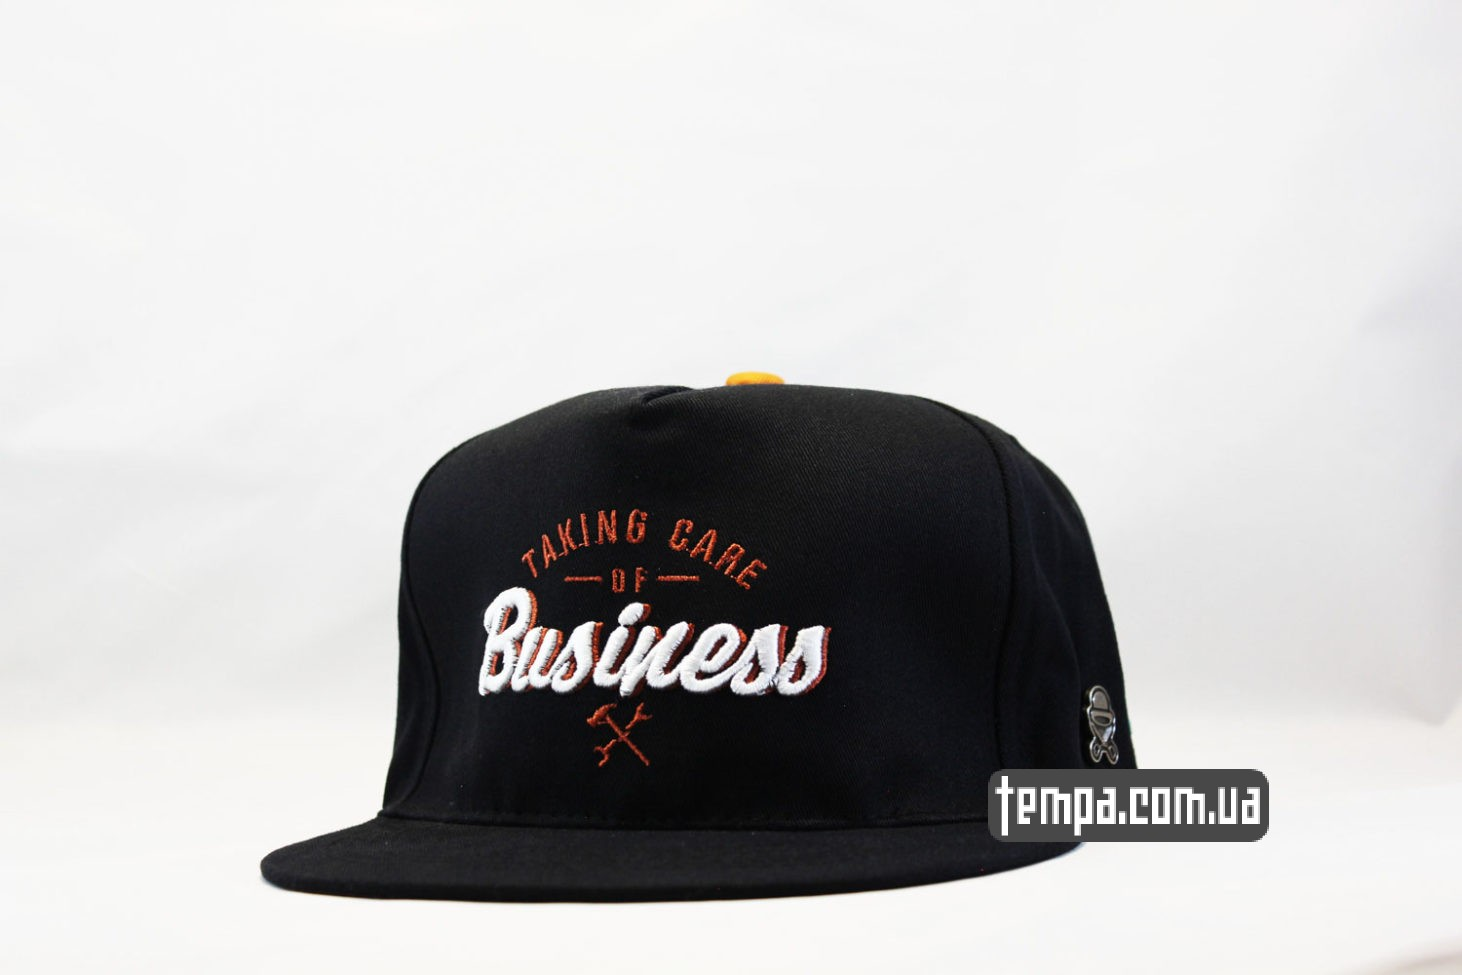 кепка бейсболка snapback taking care of business cayler and sons купить Украина